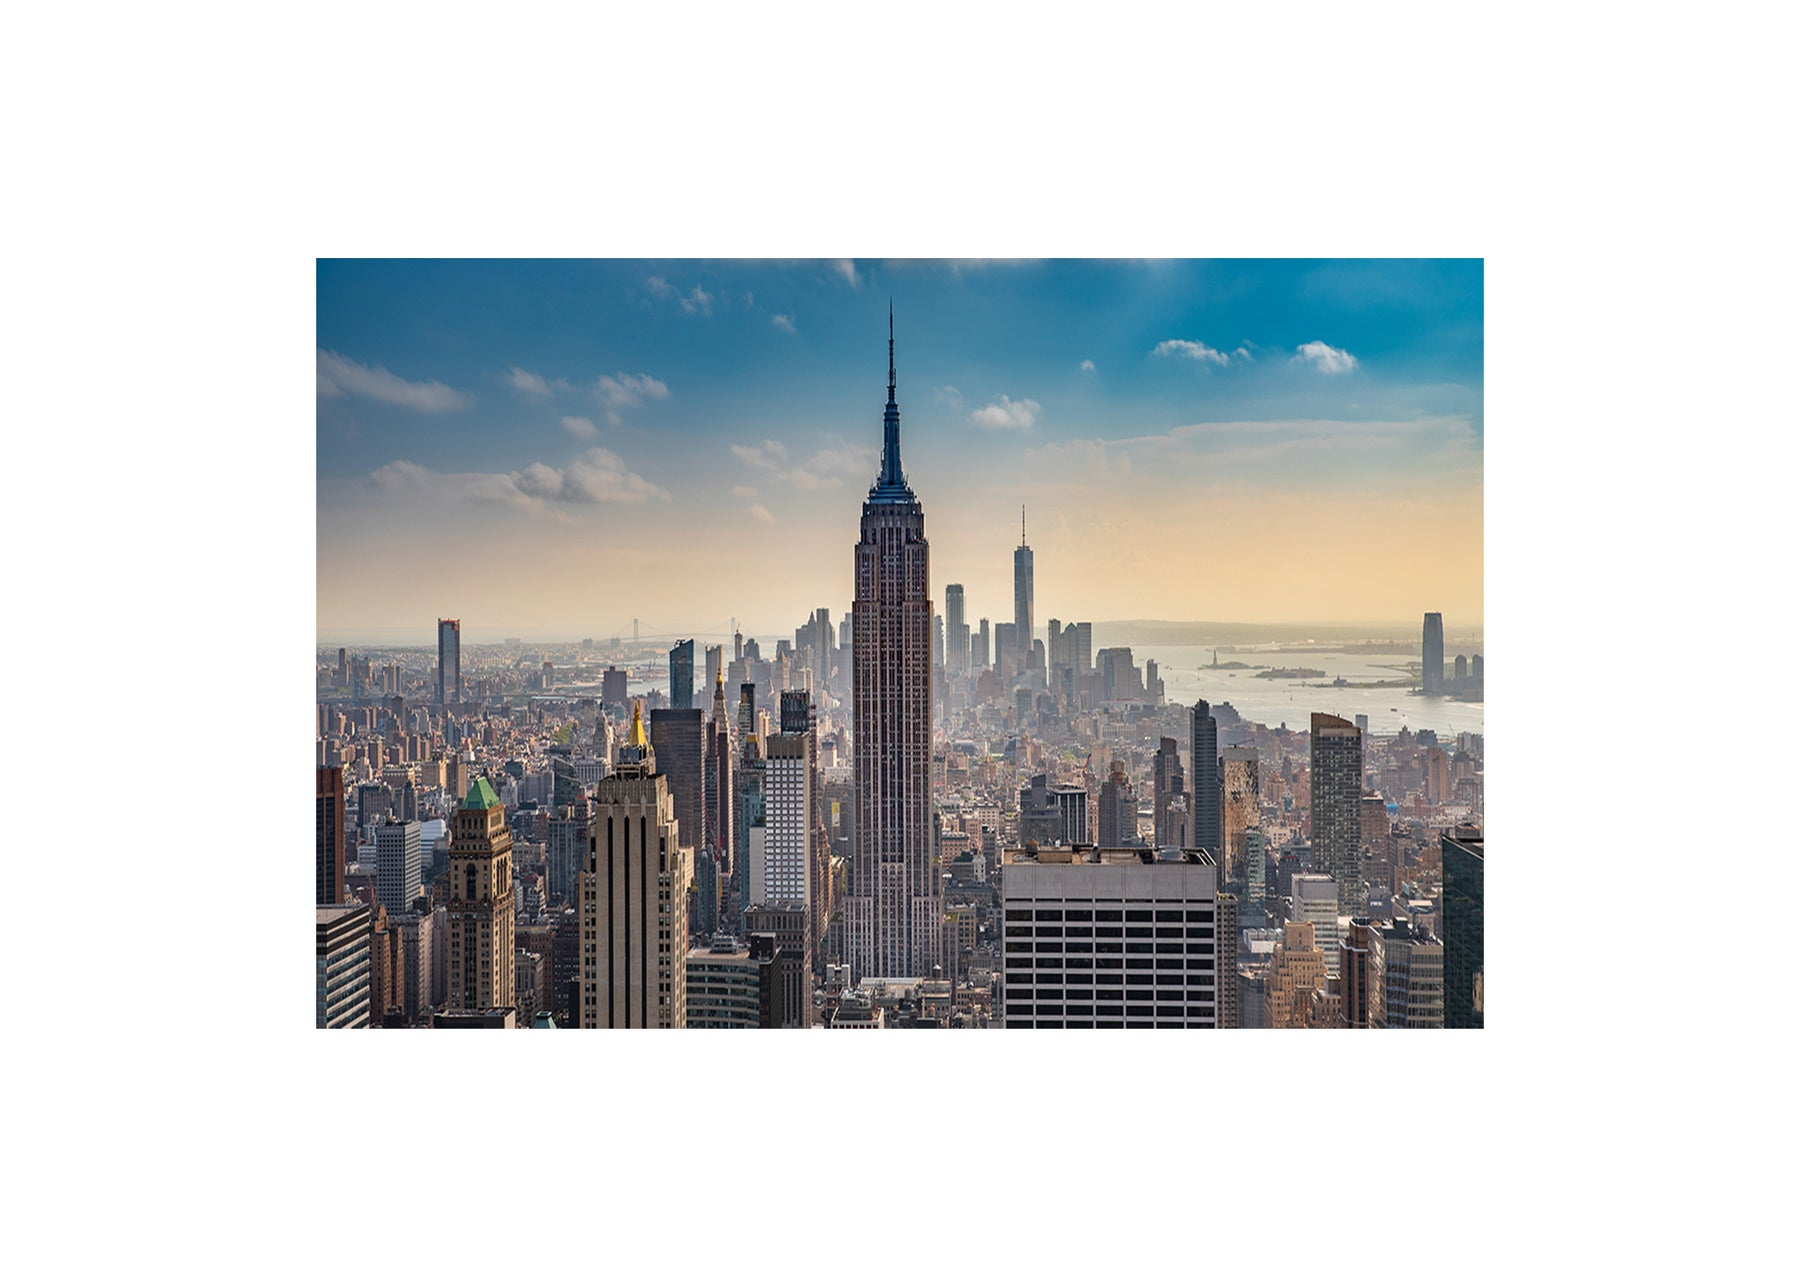 New York - What You Need to Know About the Novel Coronavirus and Measures Taken